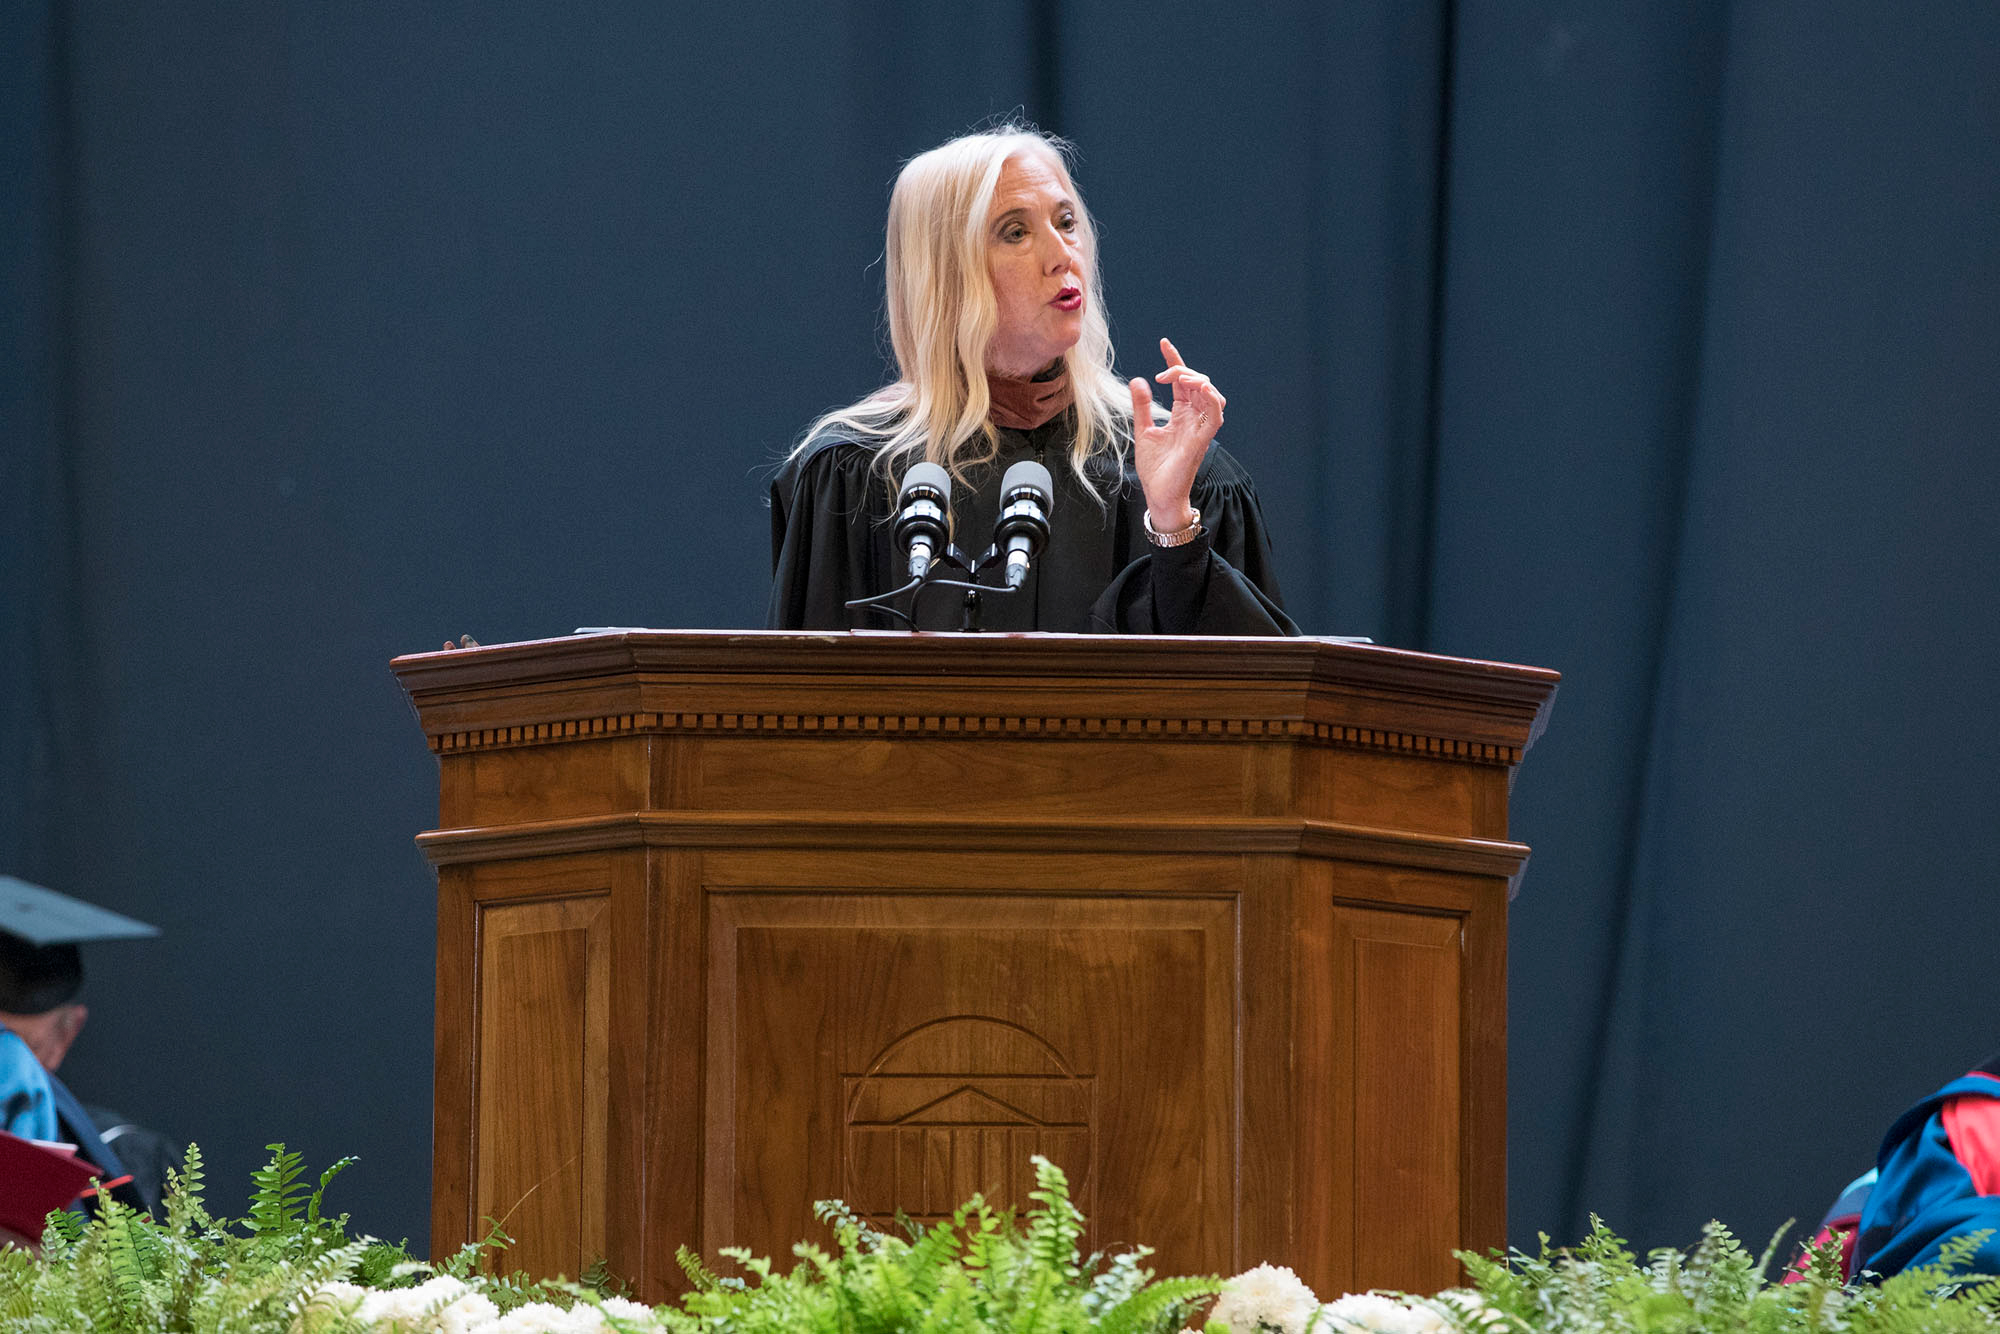 Poet Lisa Russ Spaar delivers the address at the 2017 Fall Convocation in the John Paul Jones Arena.